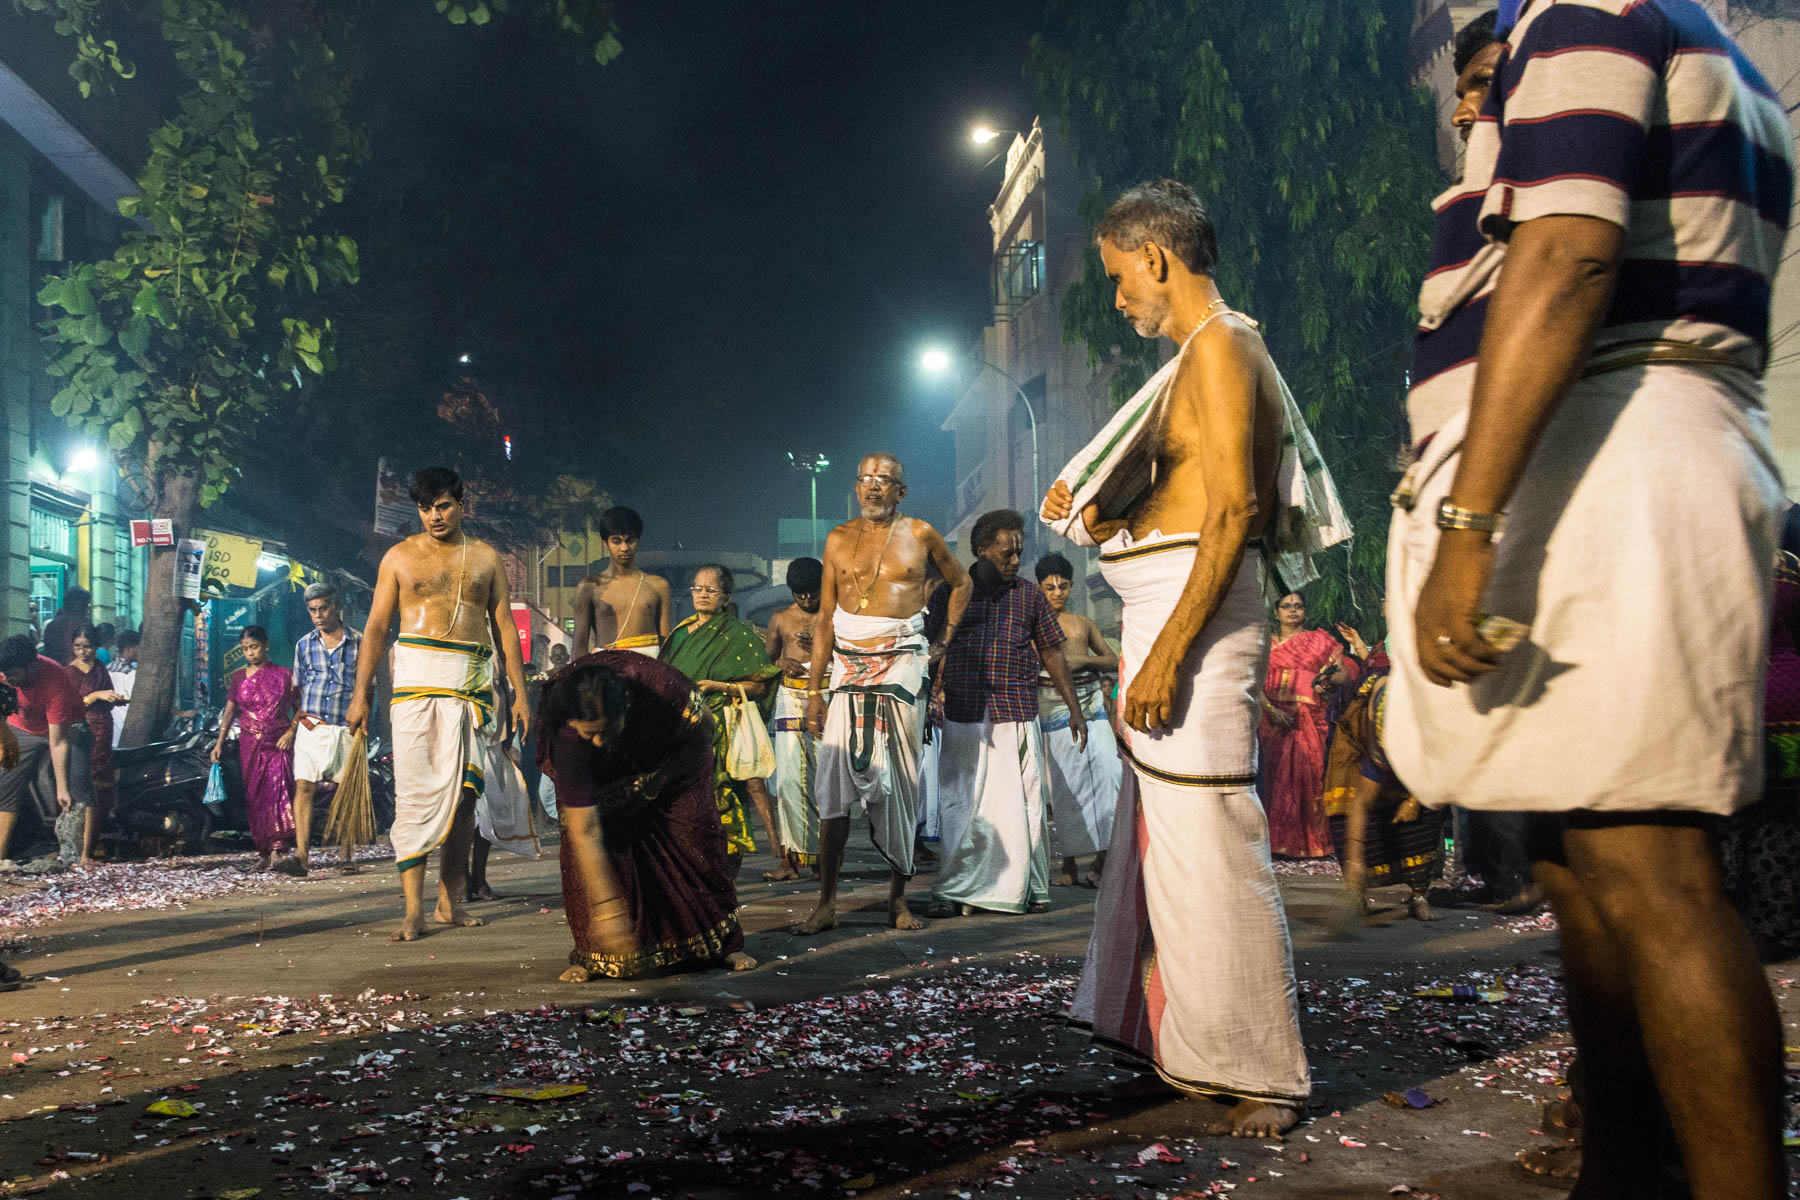 Women clearing the streets while celebrating Diwali in Chennai, India - Lost With Purpose